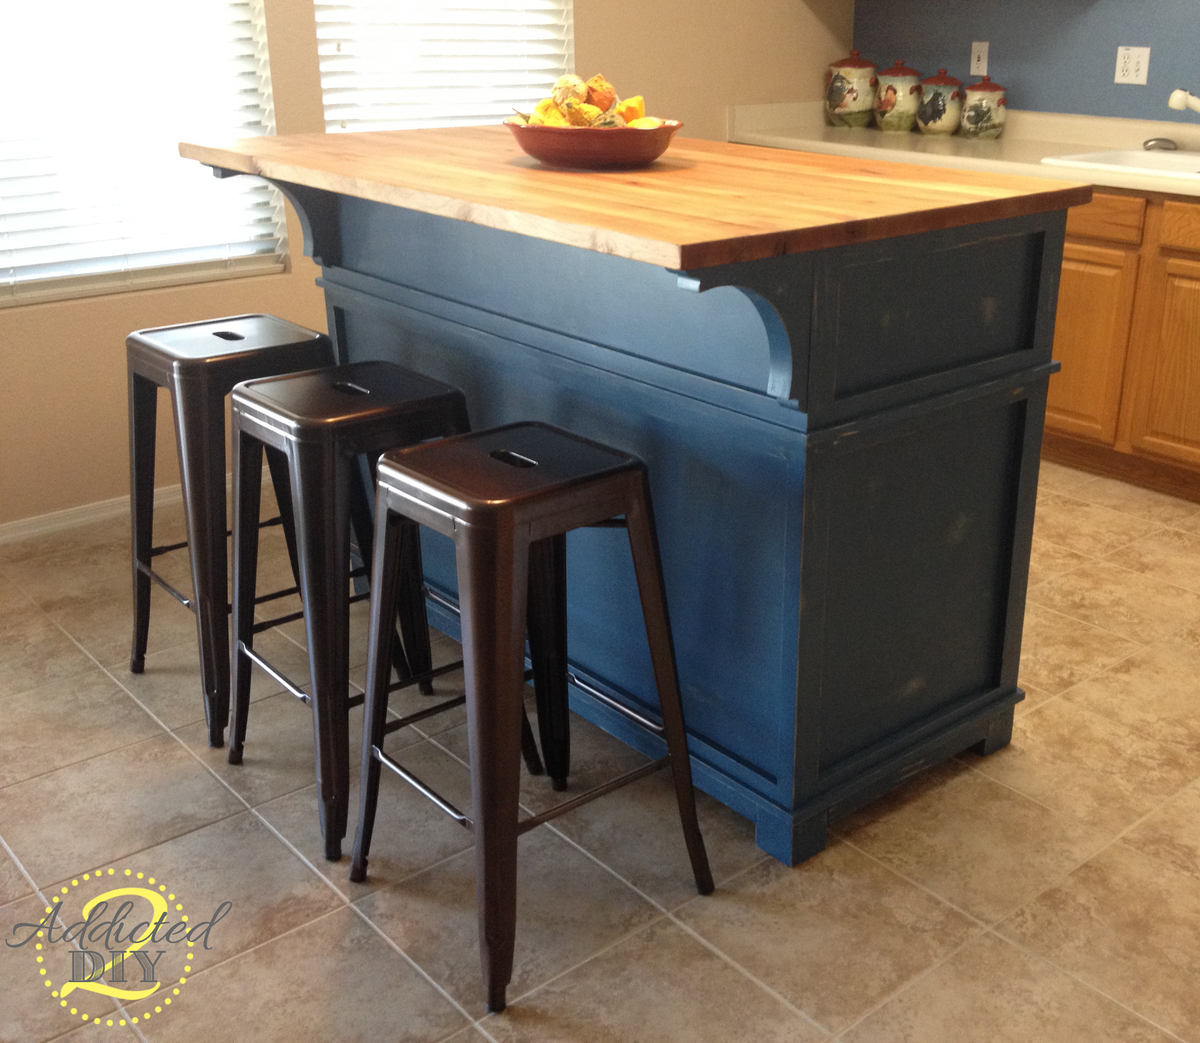 Diy Kitchen Island ana white | diy kitchen island - diy projects